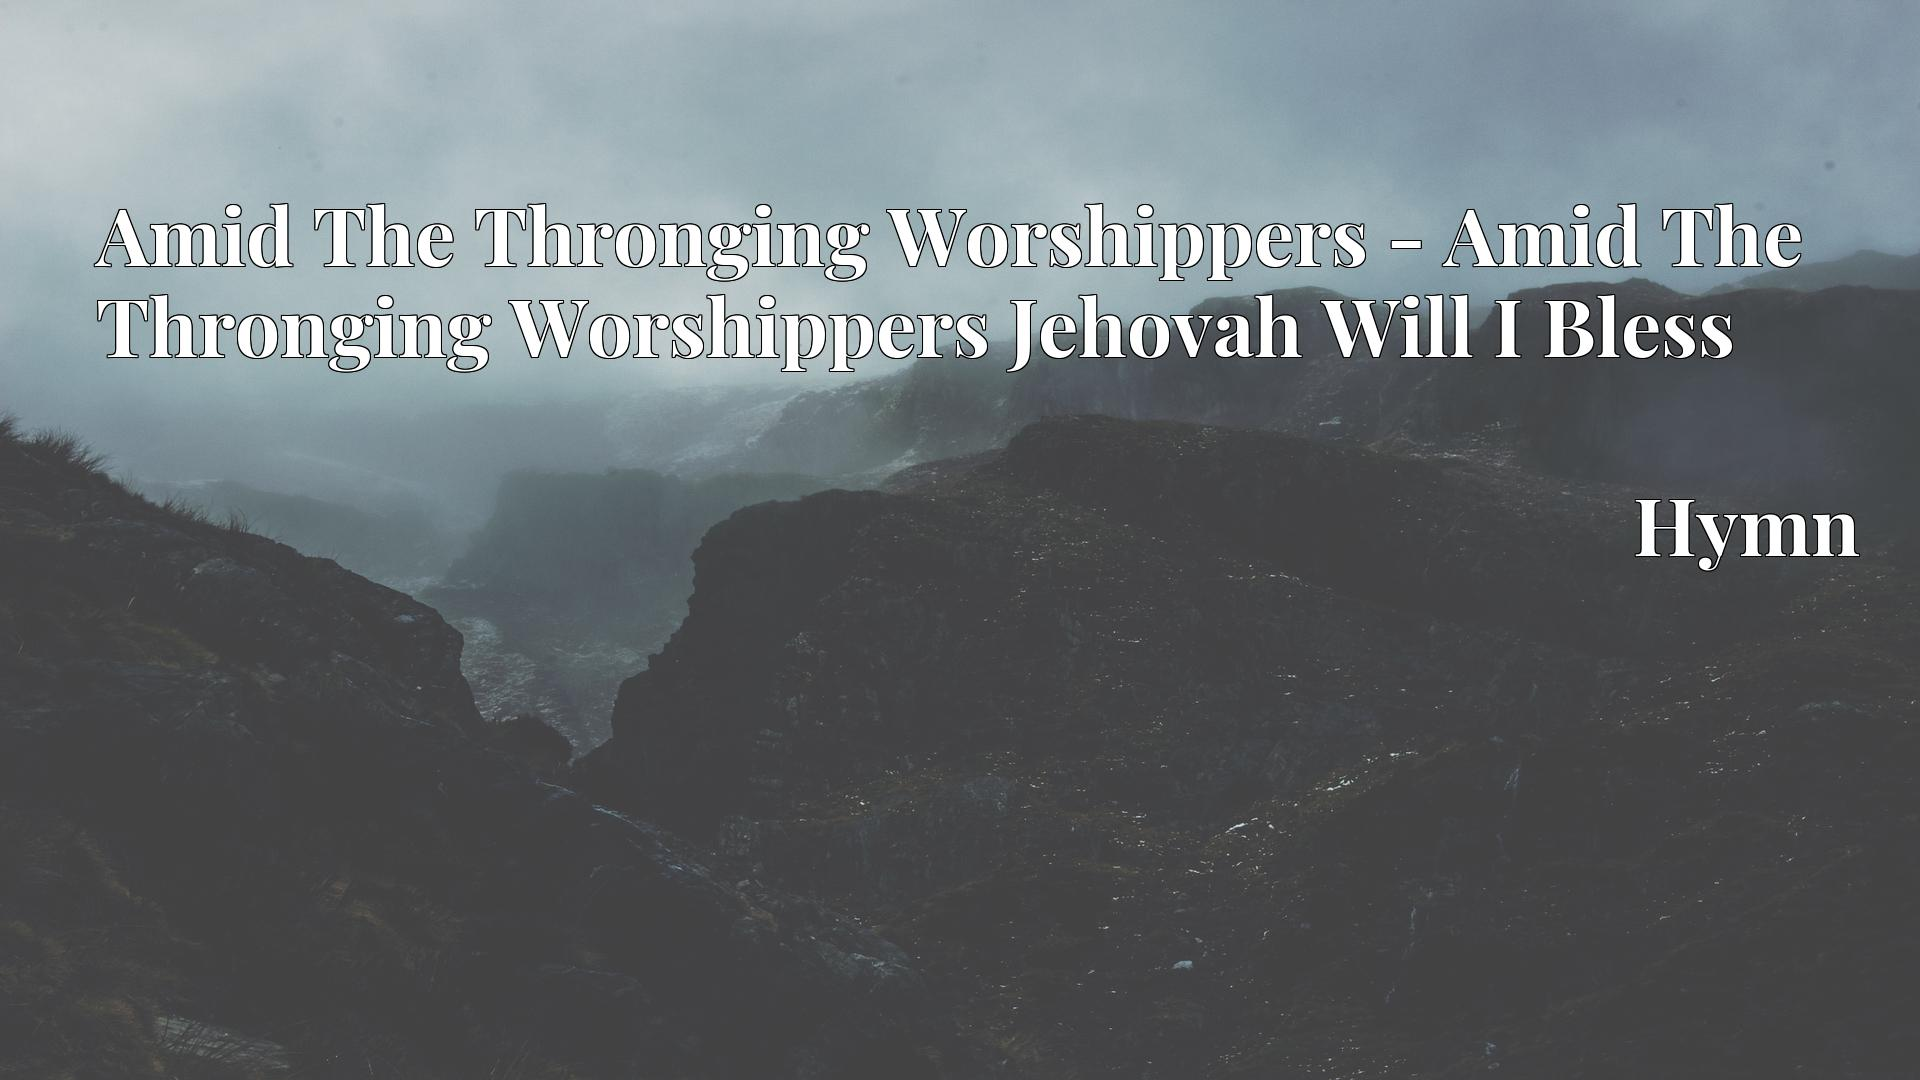 Amid The Thronging Worshippers - Amid The Thronging Worshippers Jehovah Will I Bless - Hymn